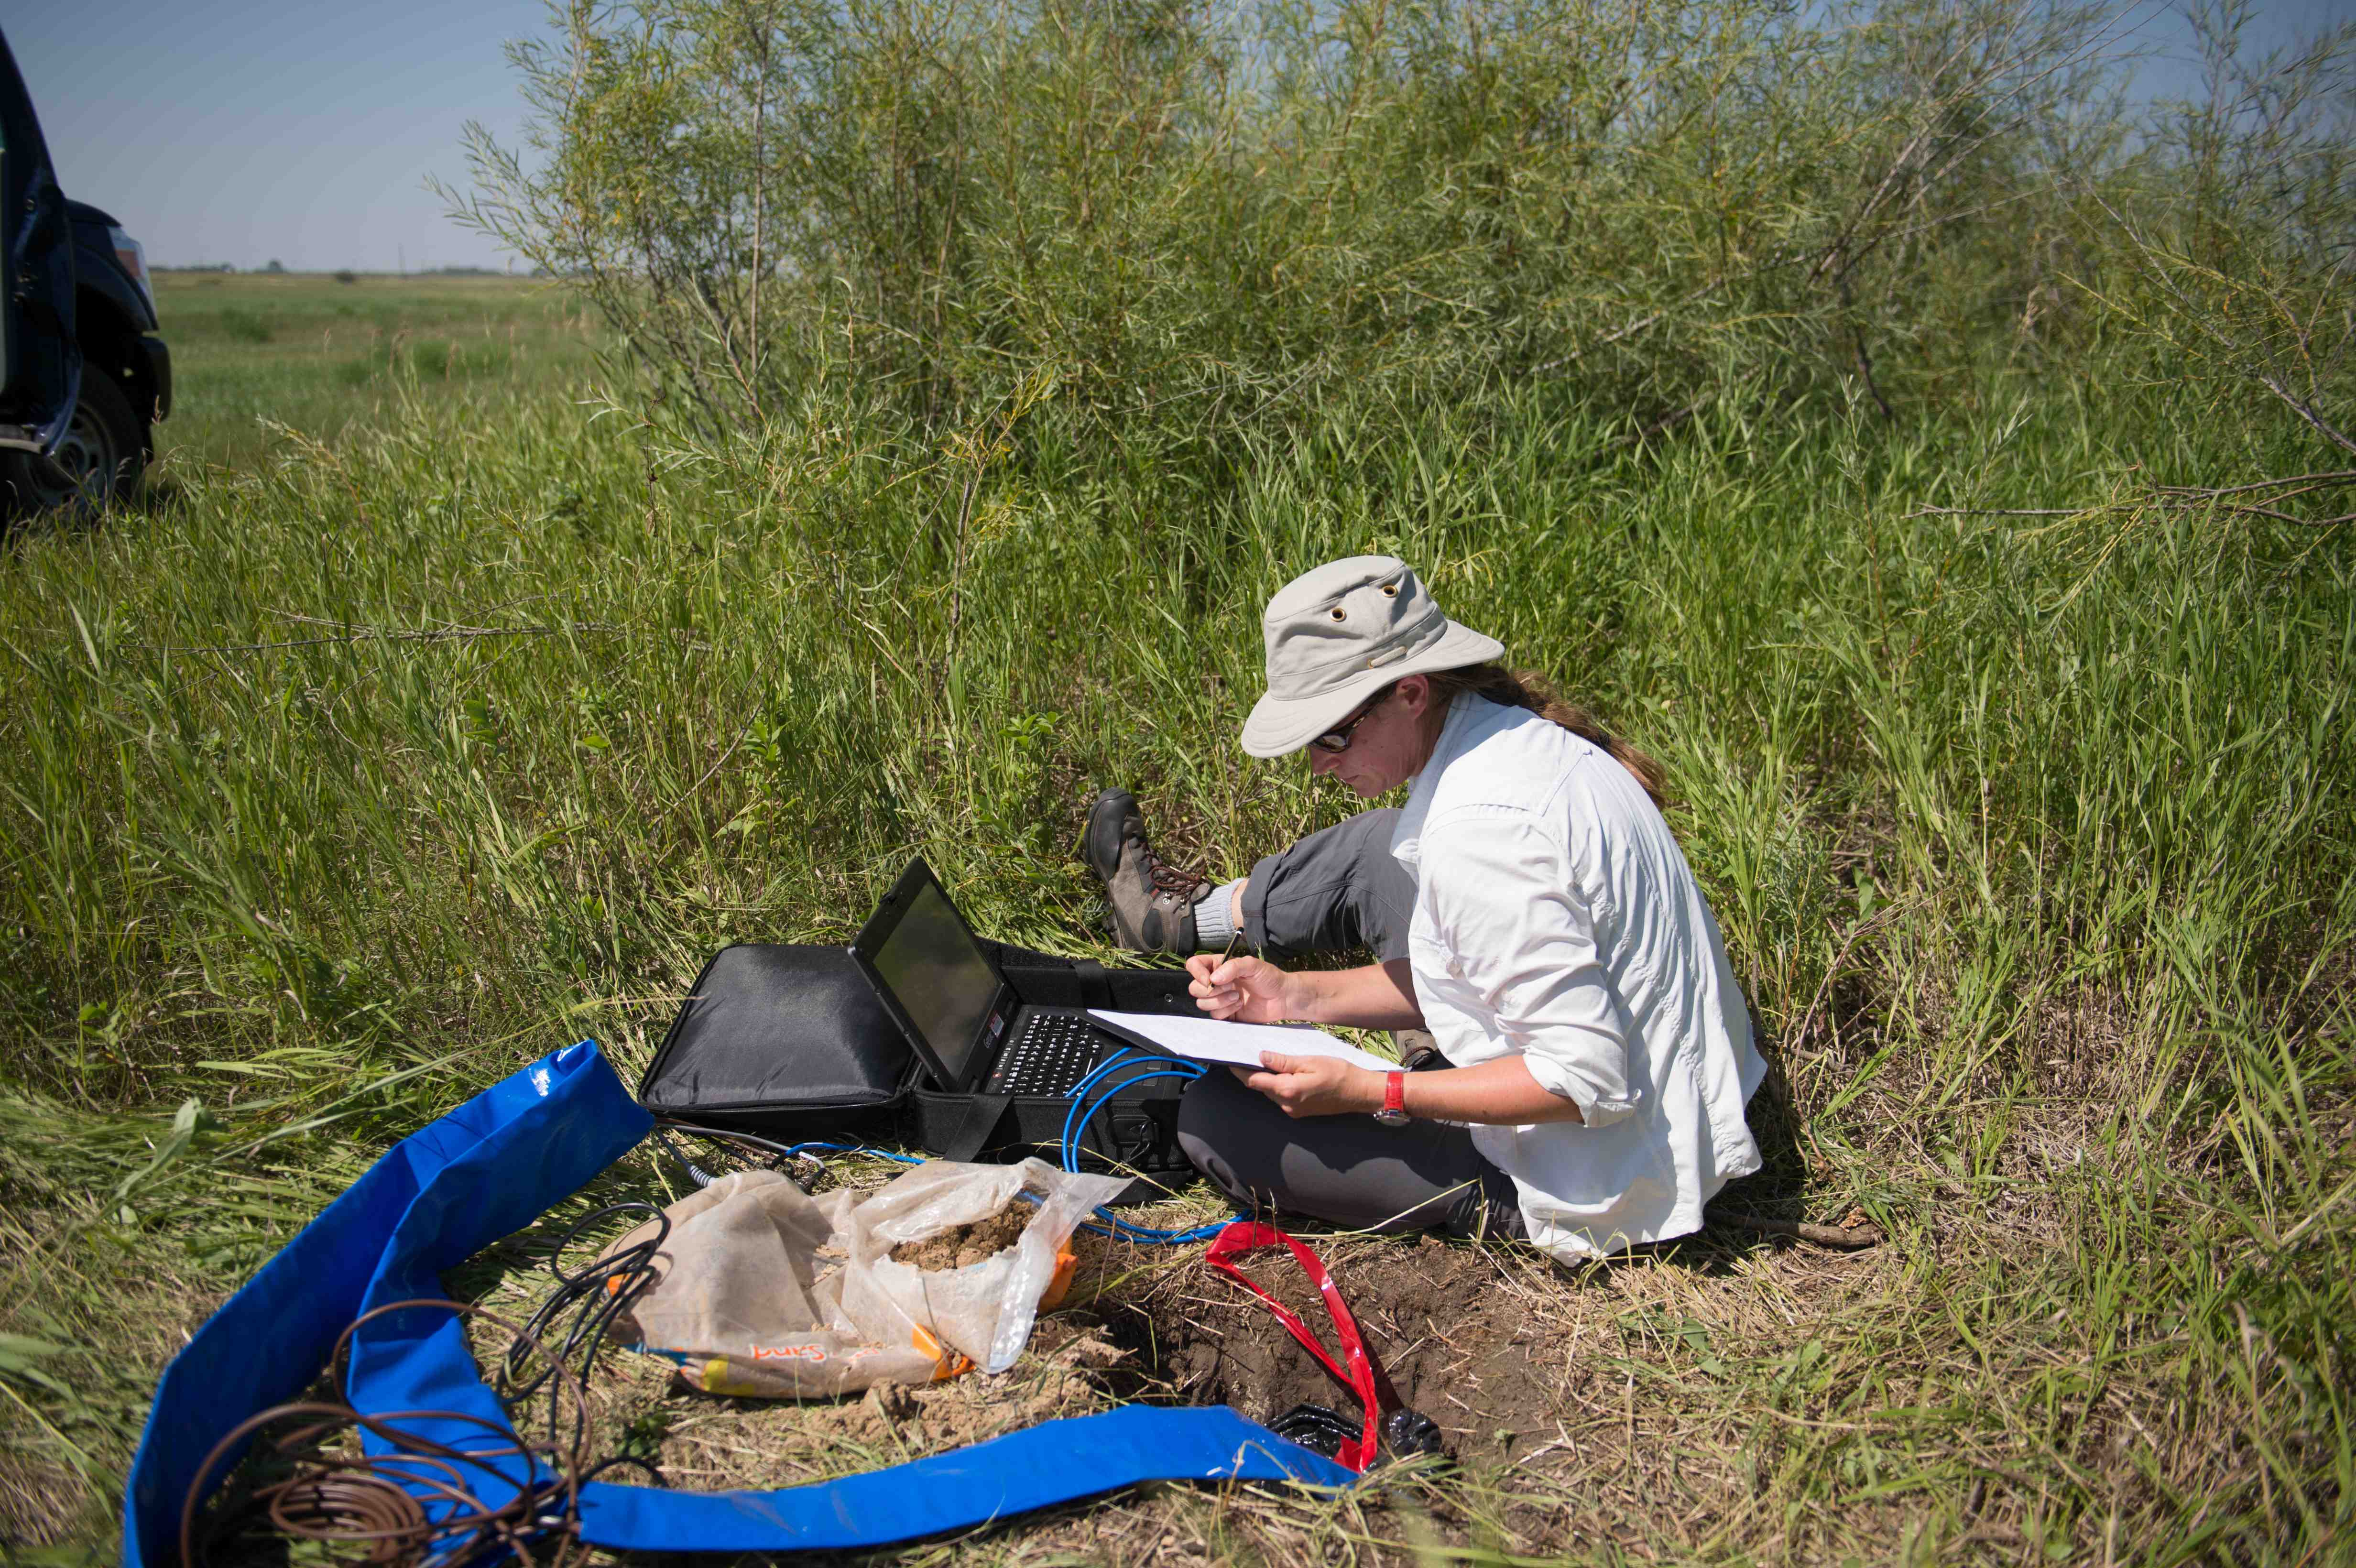 Setting up a seismometer to monitor CO2 injection at the Weyburn Field, Saskatchewan Canada